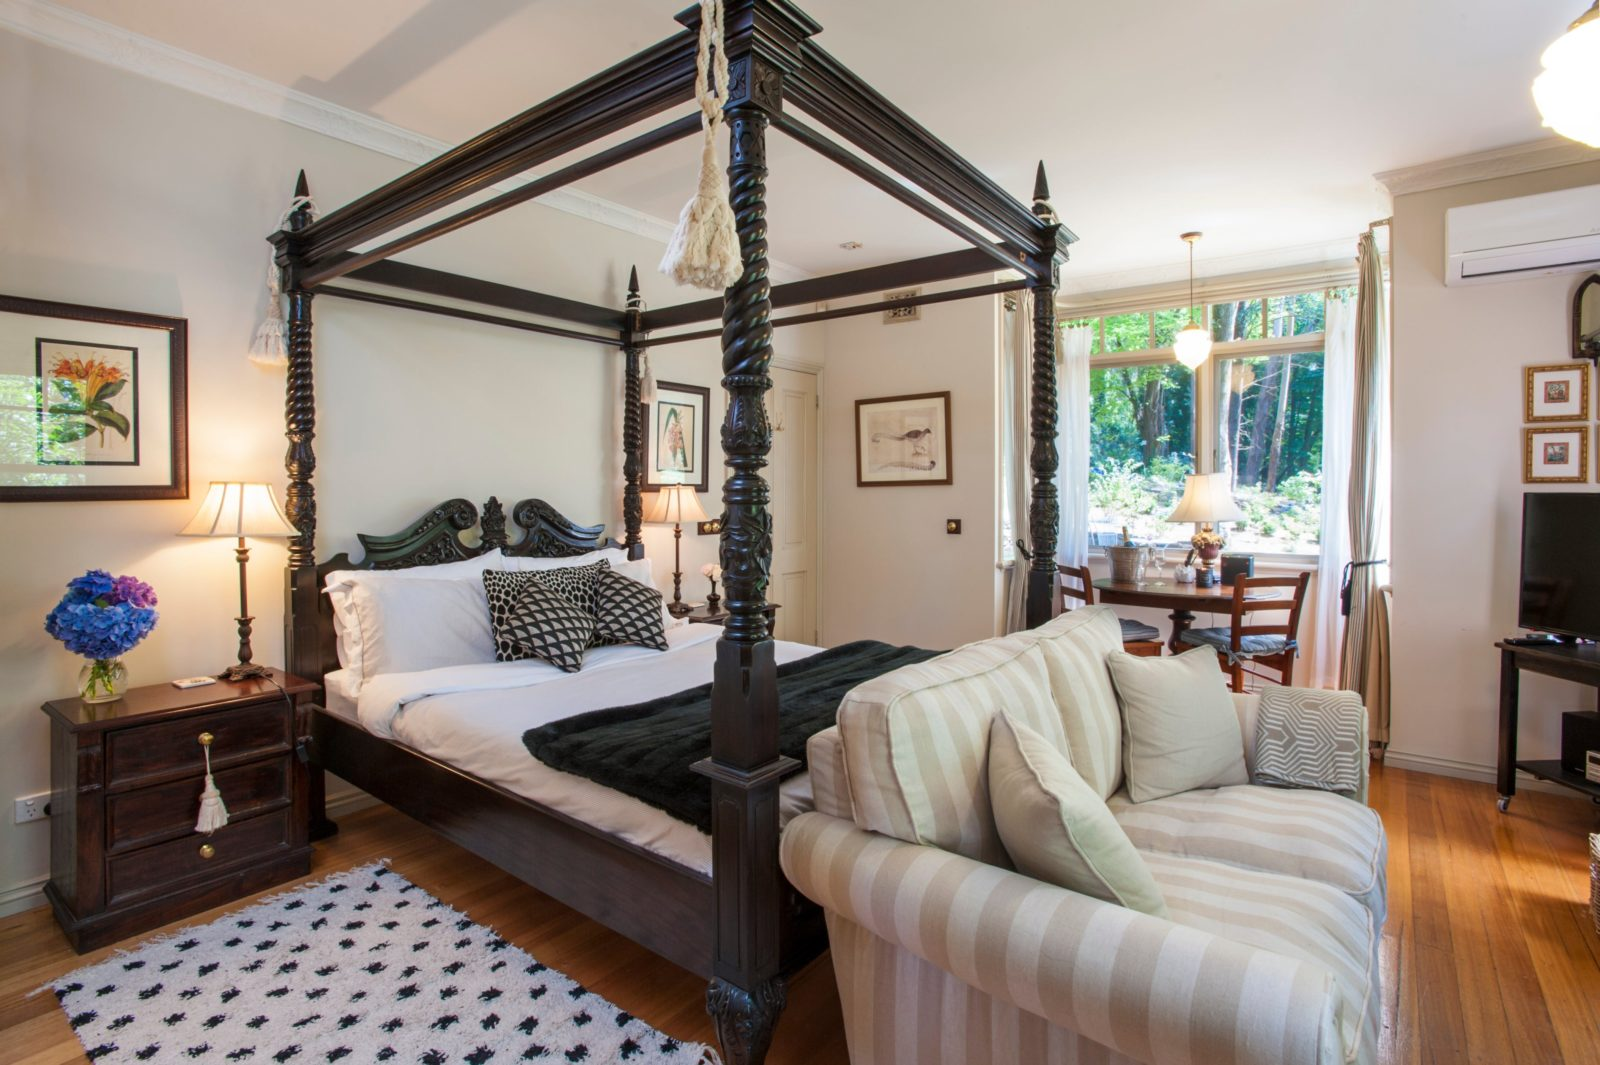 Queen size four poster bed